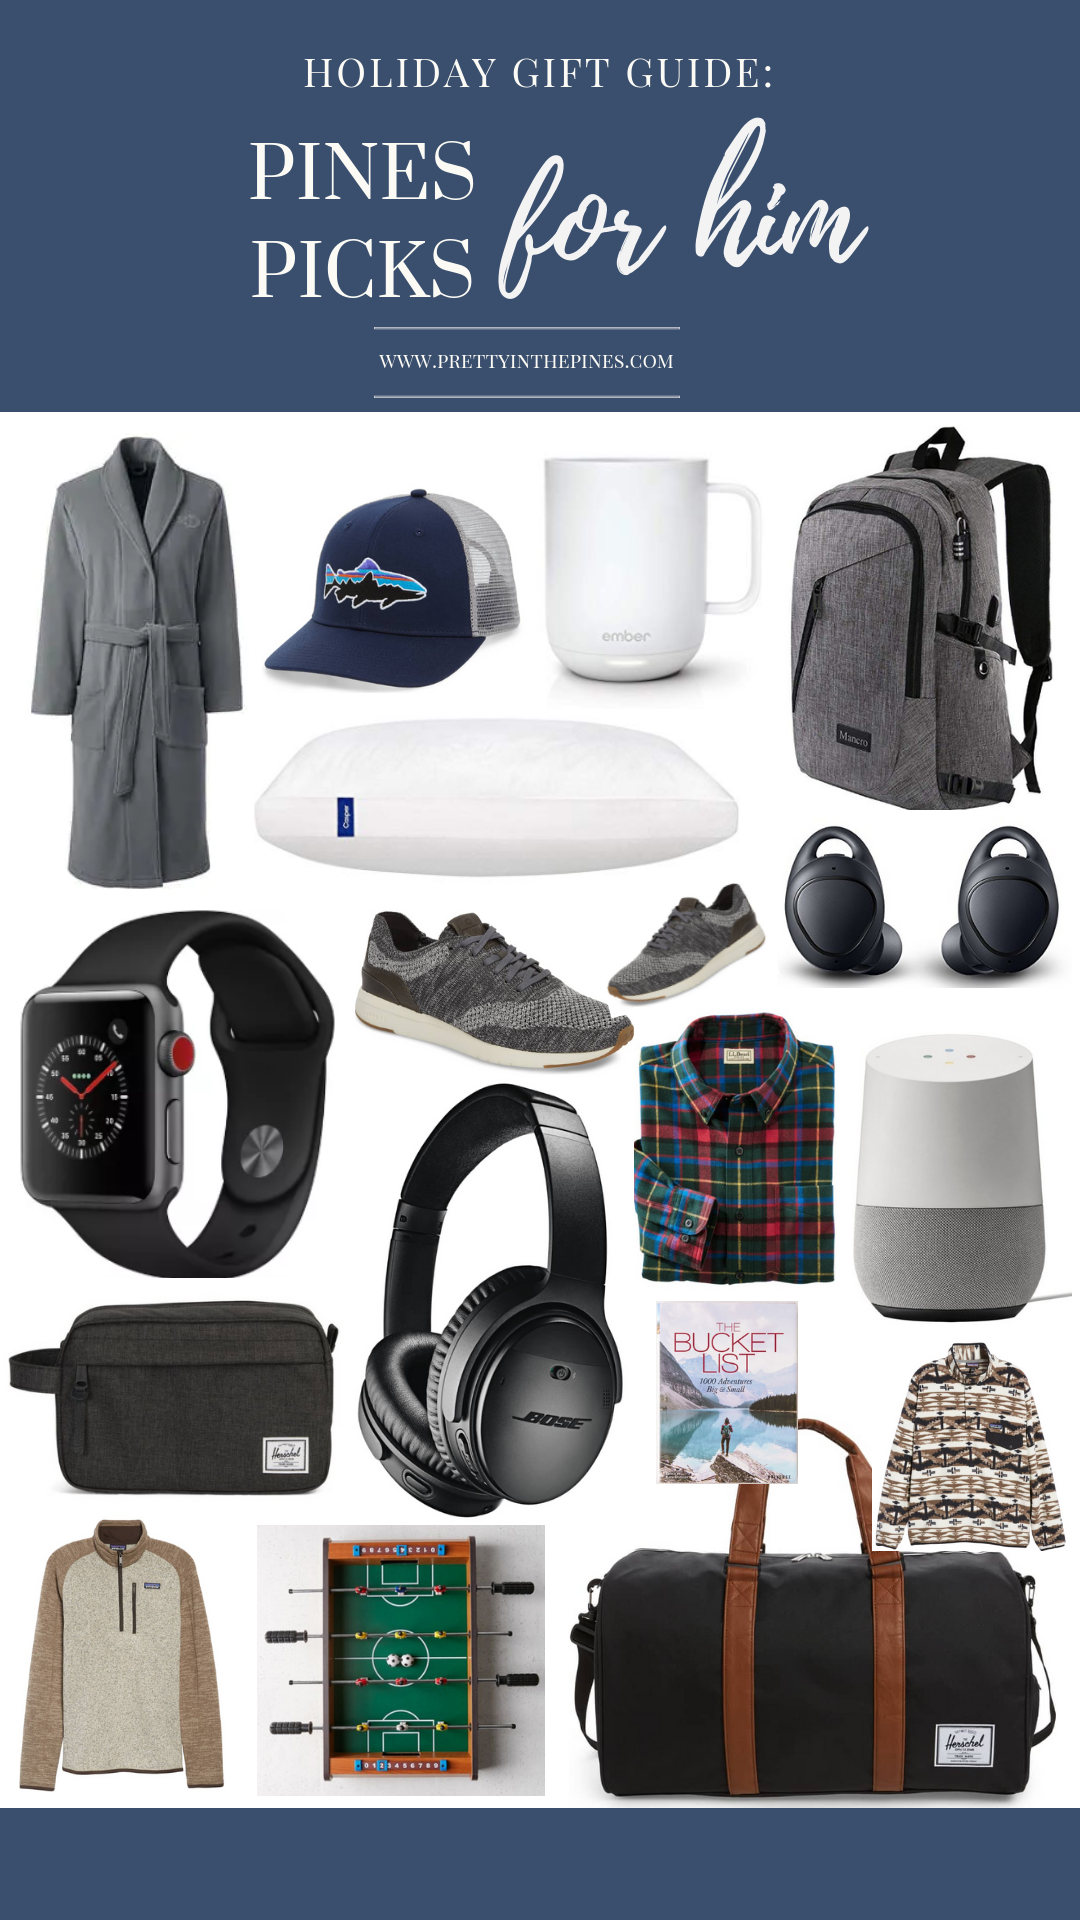 Black Friday Sales, Gift Guides, and Holiday Lookbook - gift ideas for HIM d6d5106569